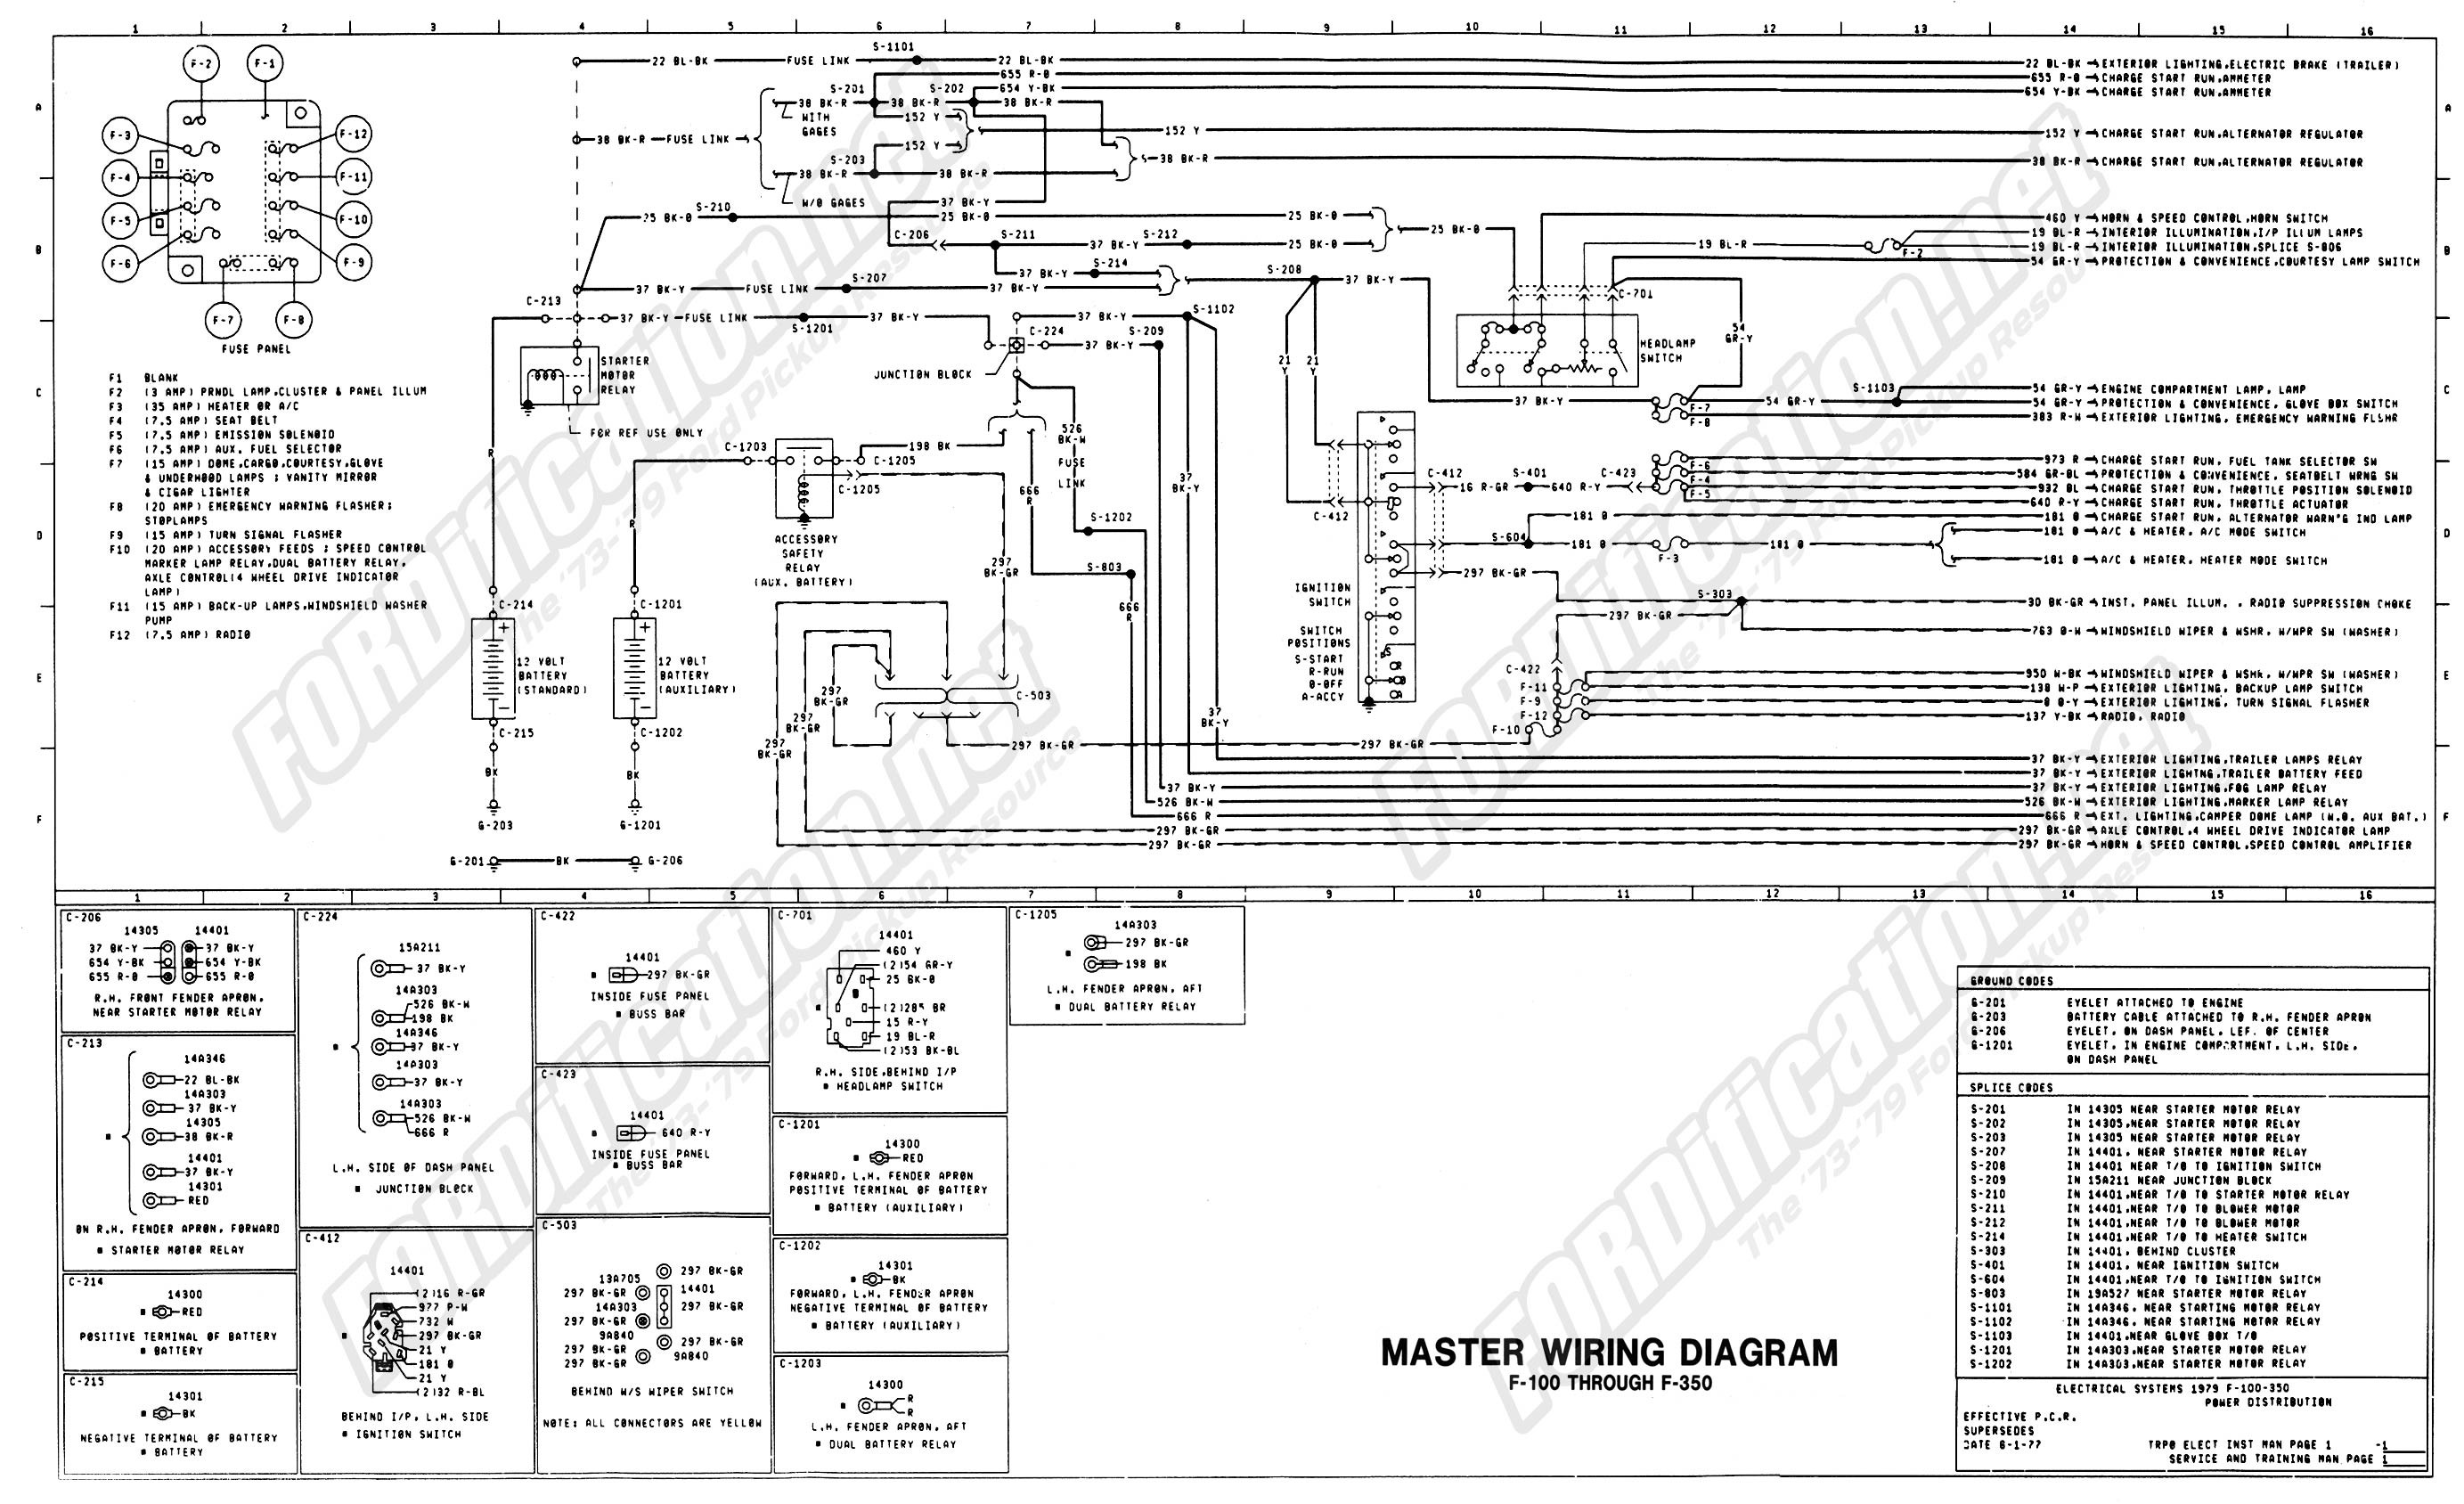 Wiring Diagram 1979 Ford F150 Ignition Switch And